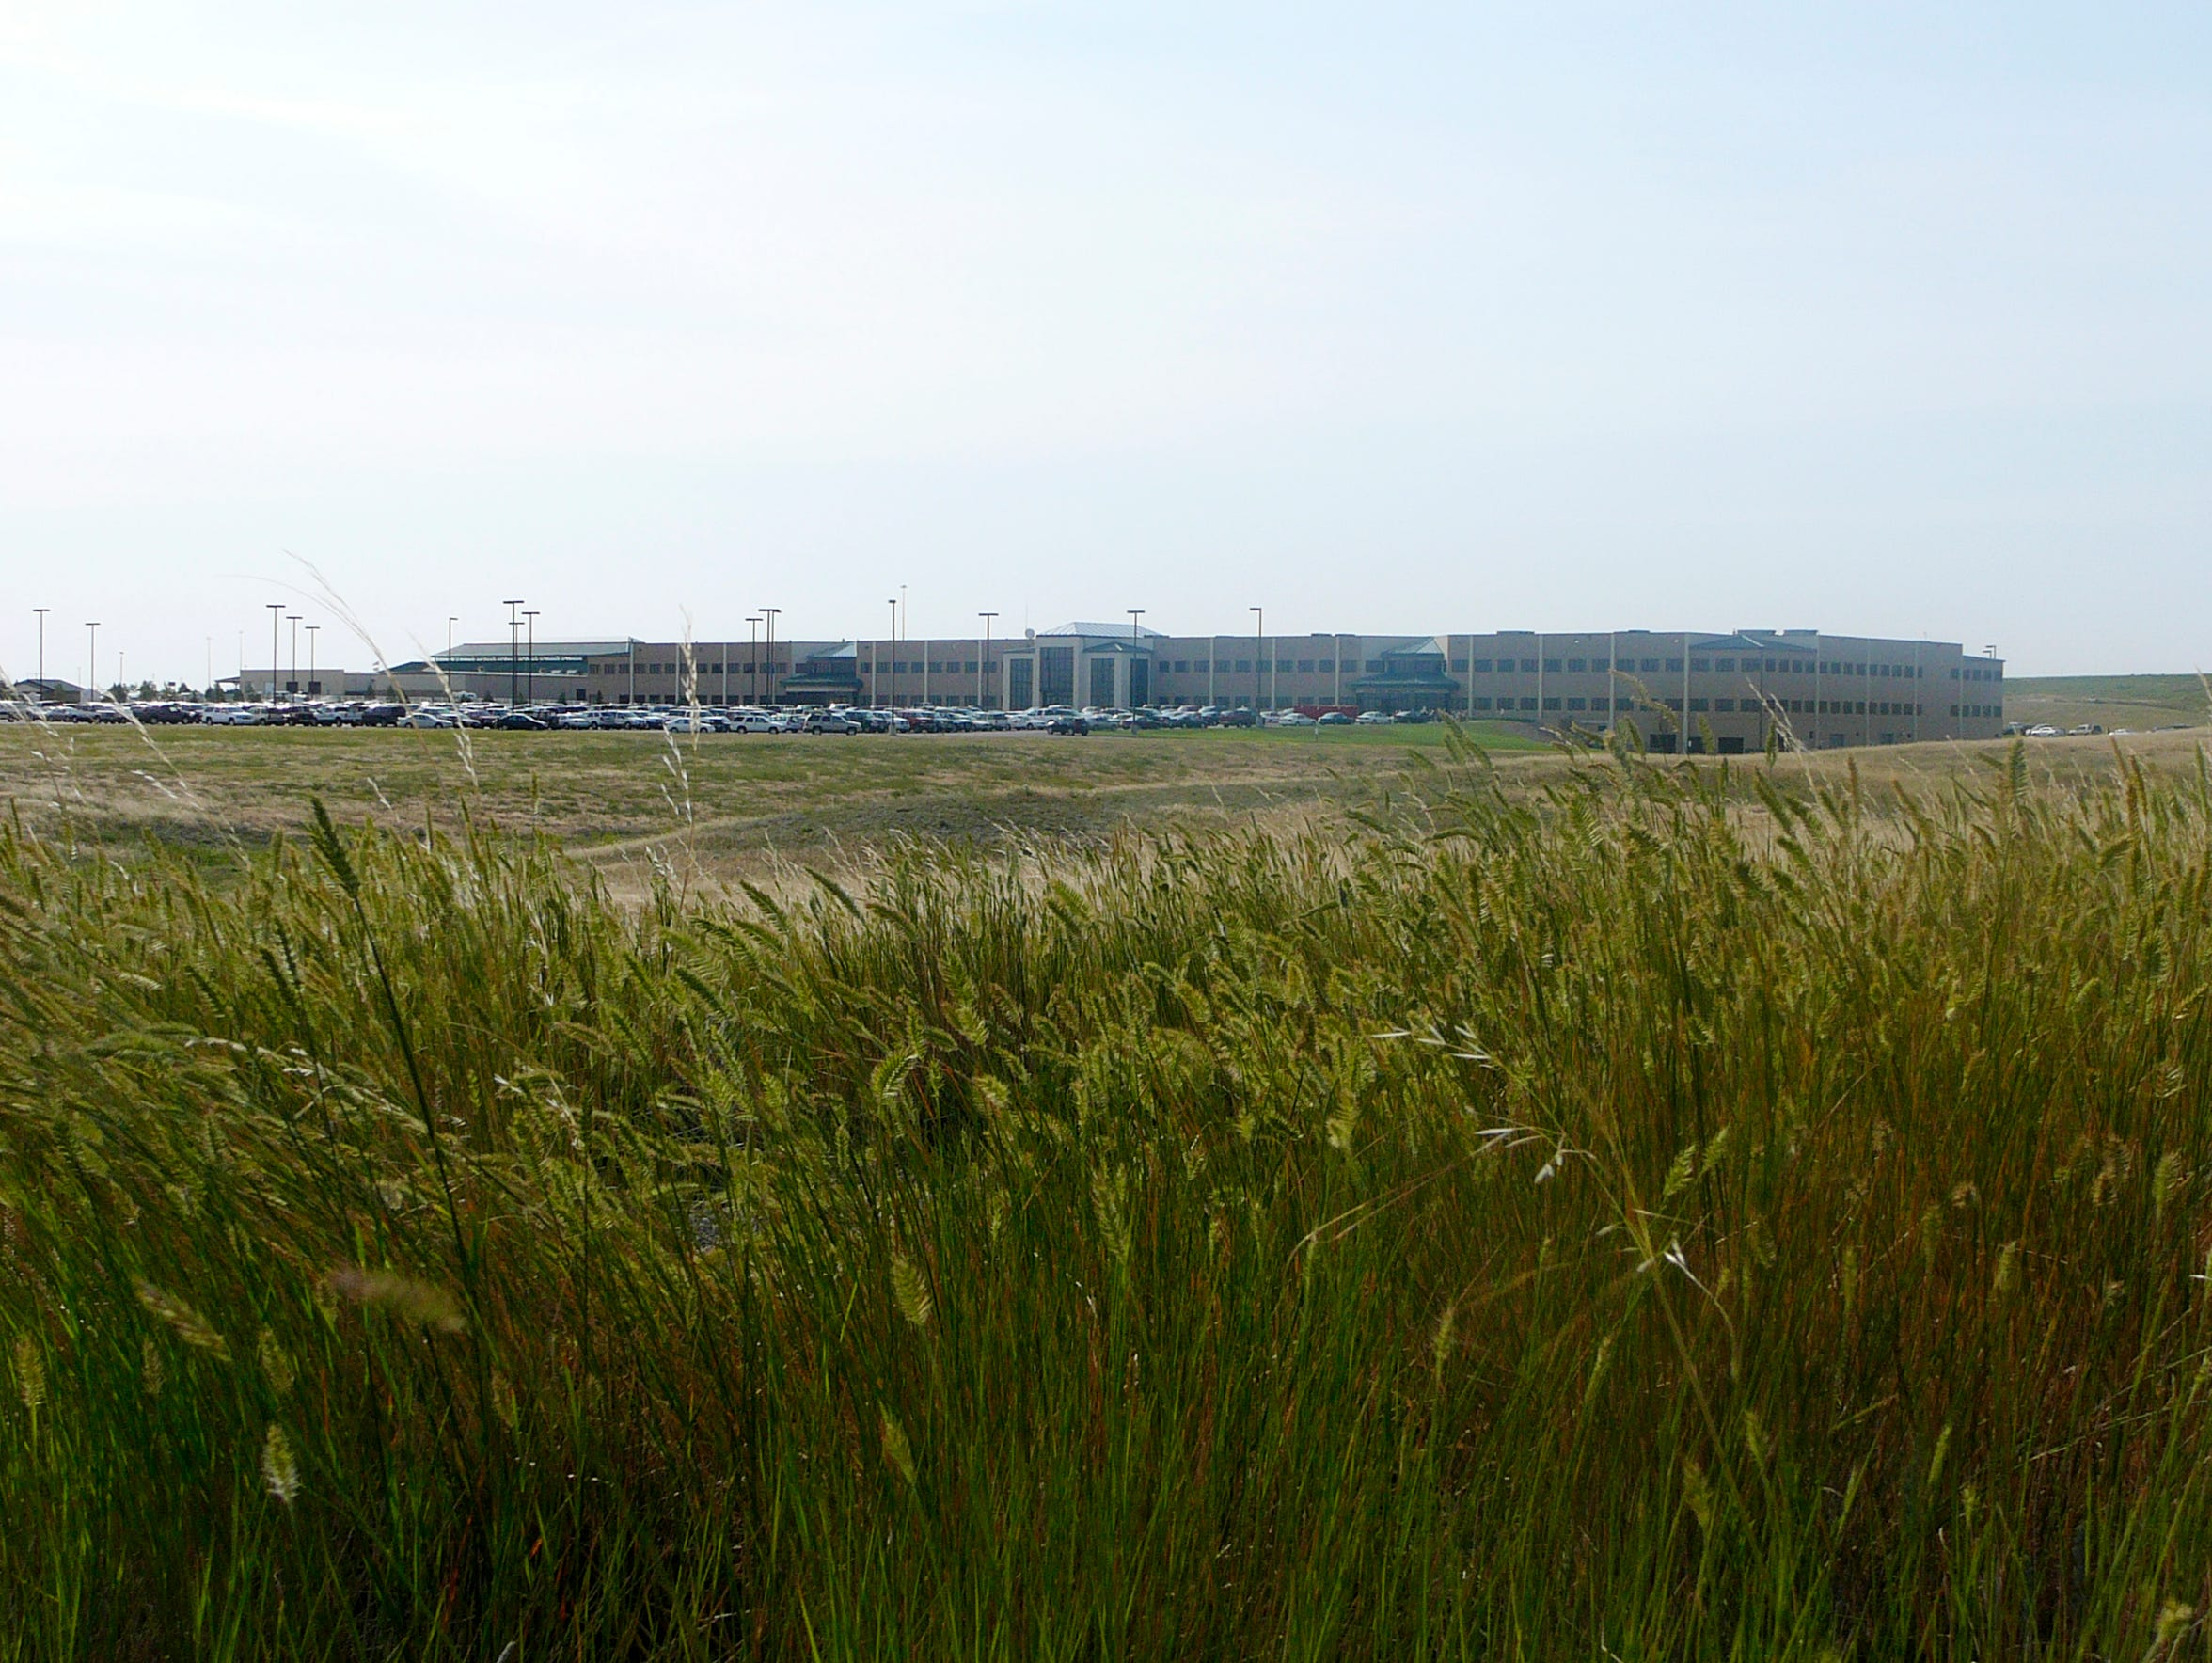 A 2007 photo of the corporate headquarters of Cabela's